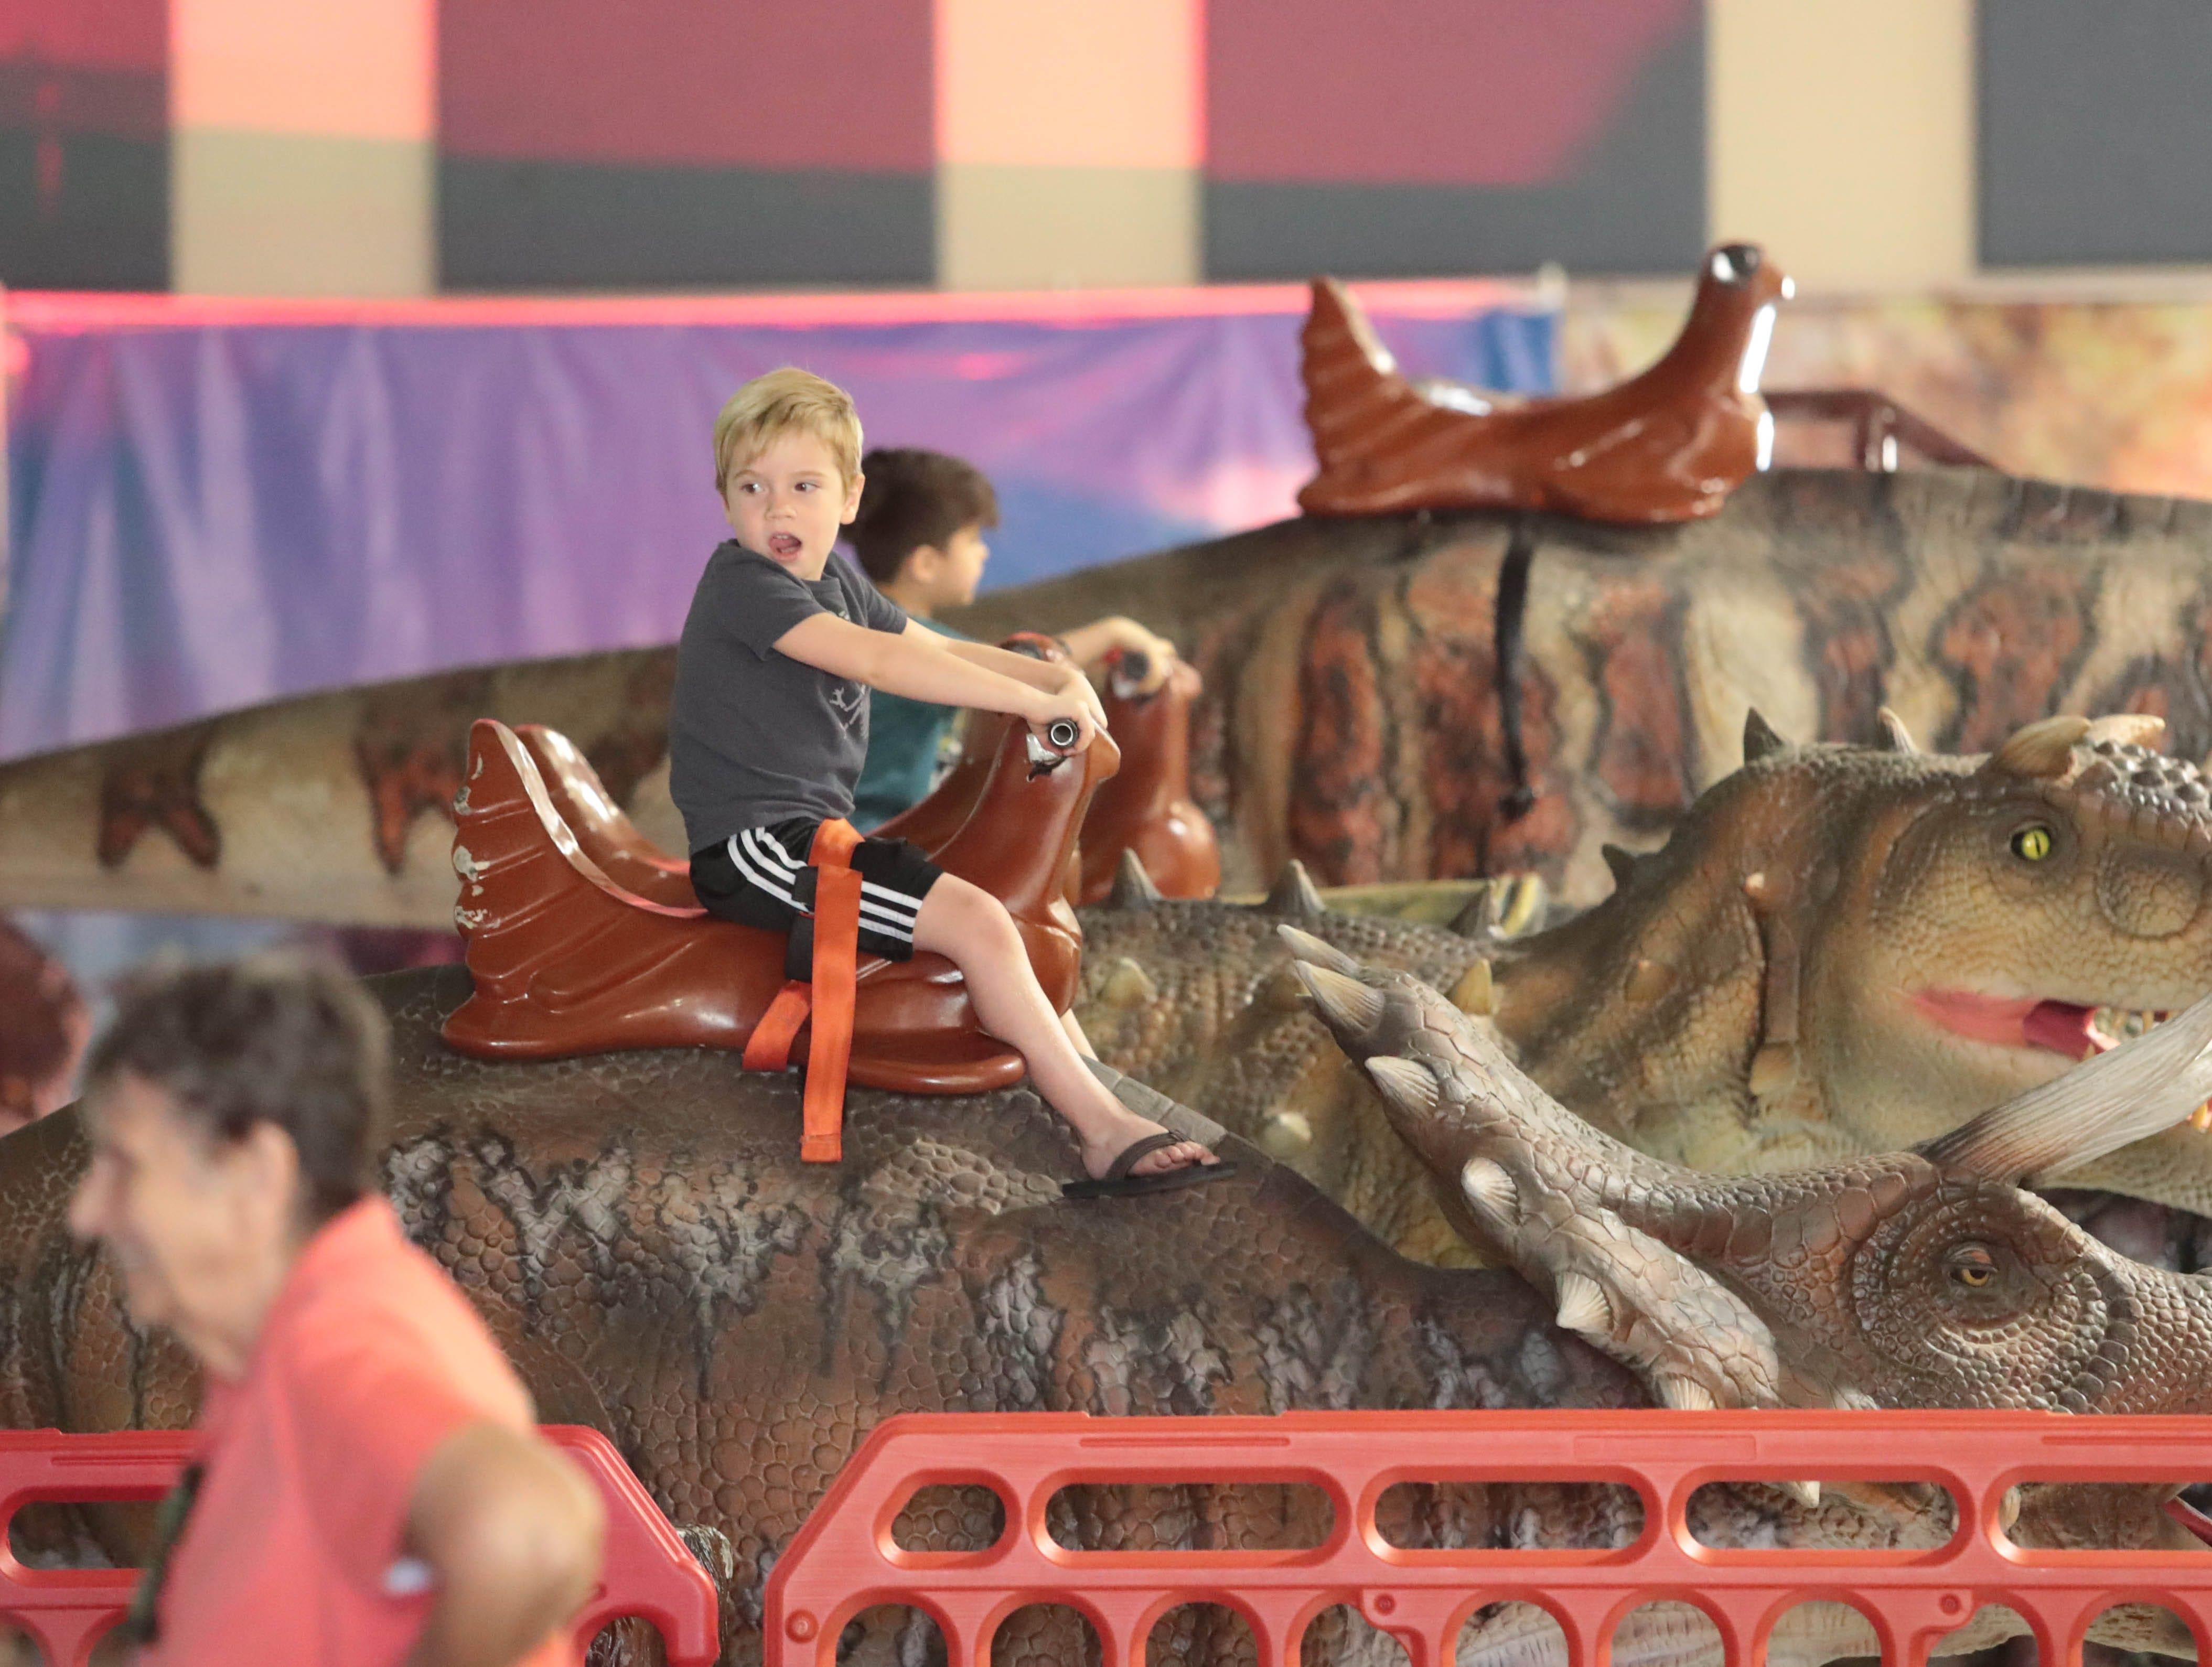 Families enjoy the visiting dinosaur attraction, Jurassic Tours, at the Riverside County fairgrounds on Saturday, September 8, 2018 in Indio.